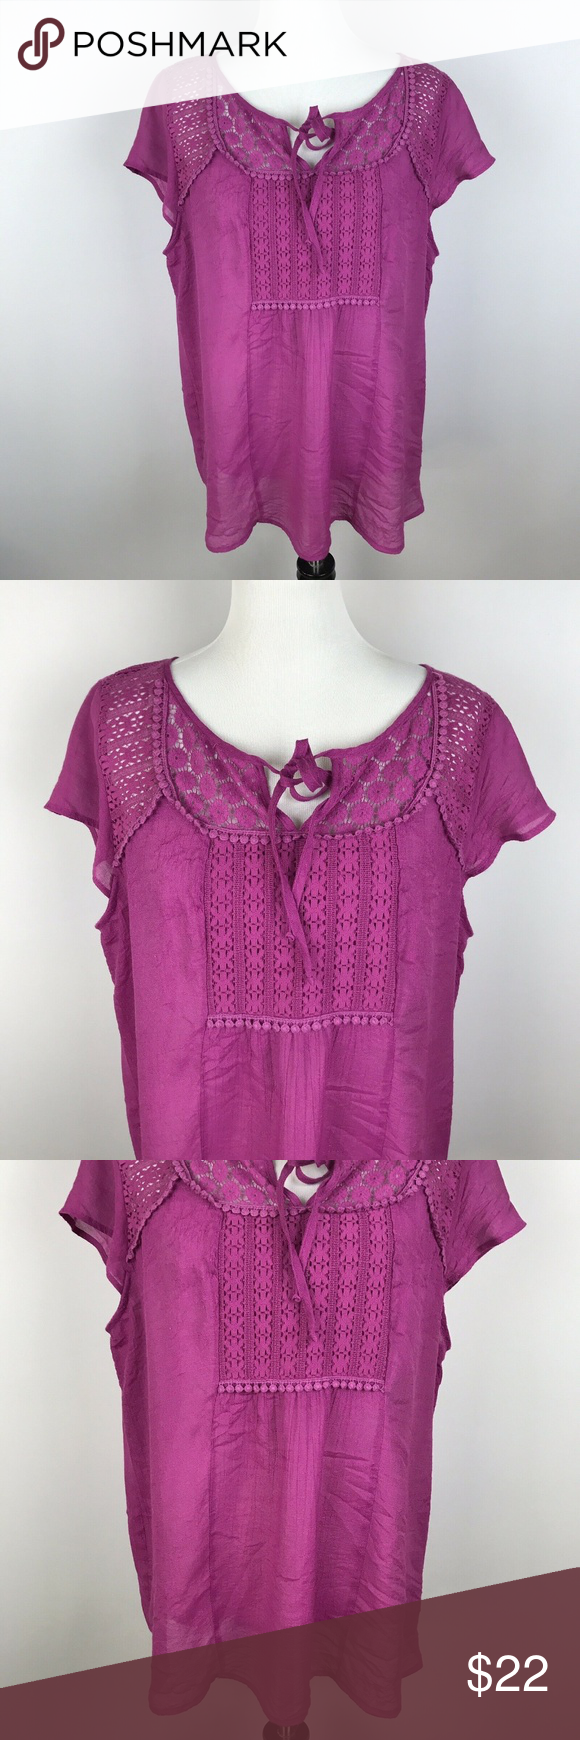 dc6e73920f25e2 Anthropologie Fig and Flower Short Sleeve Top 1X Anthropologie Fig and Flower  Short Sleeve Top Plus